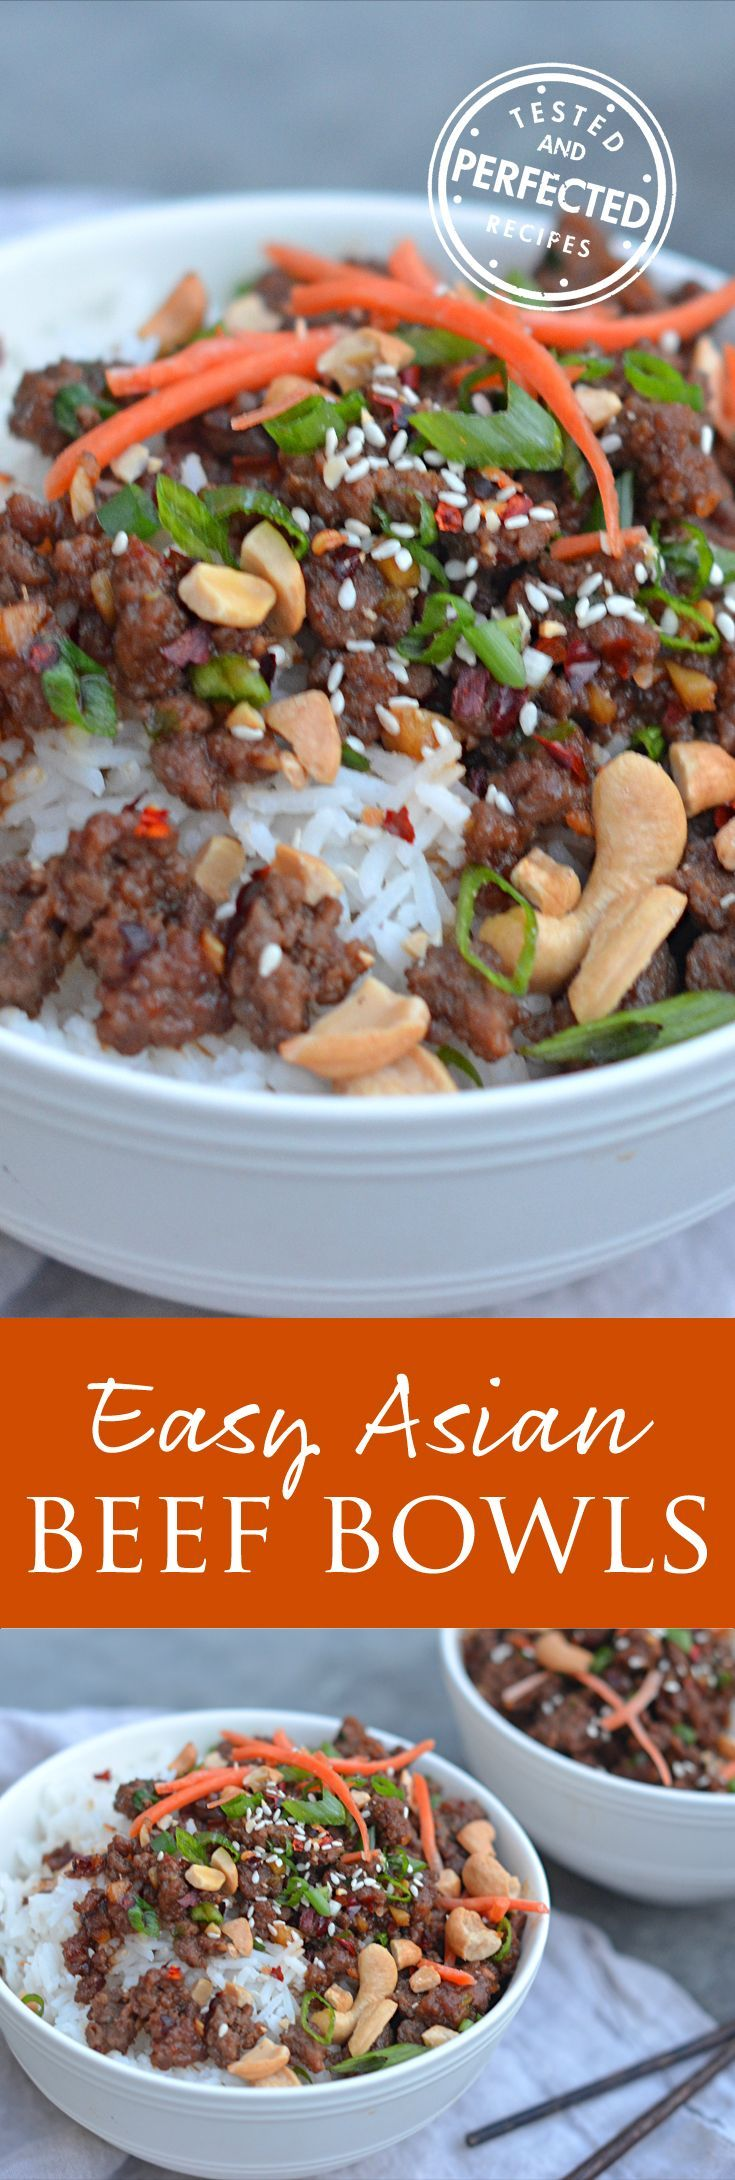 30-Minute Asian Beef Bowls - serve in lettuce cups or over cauliflower rice for low carb.